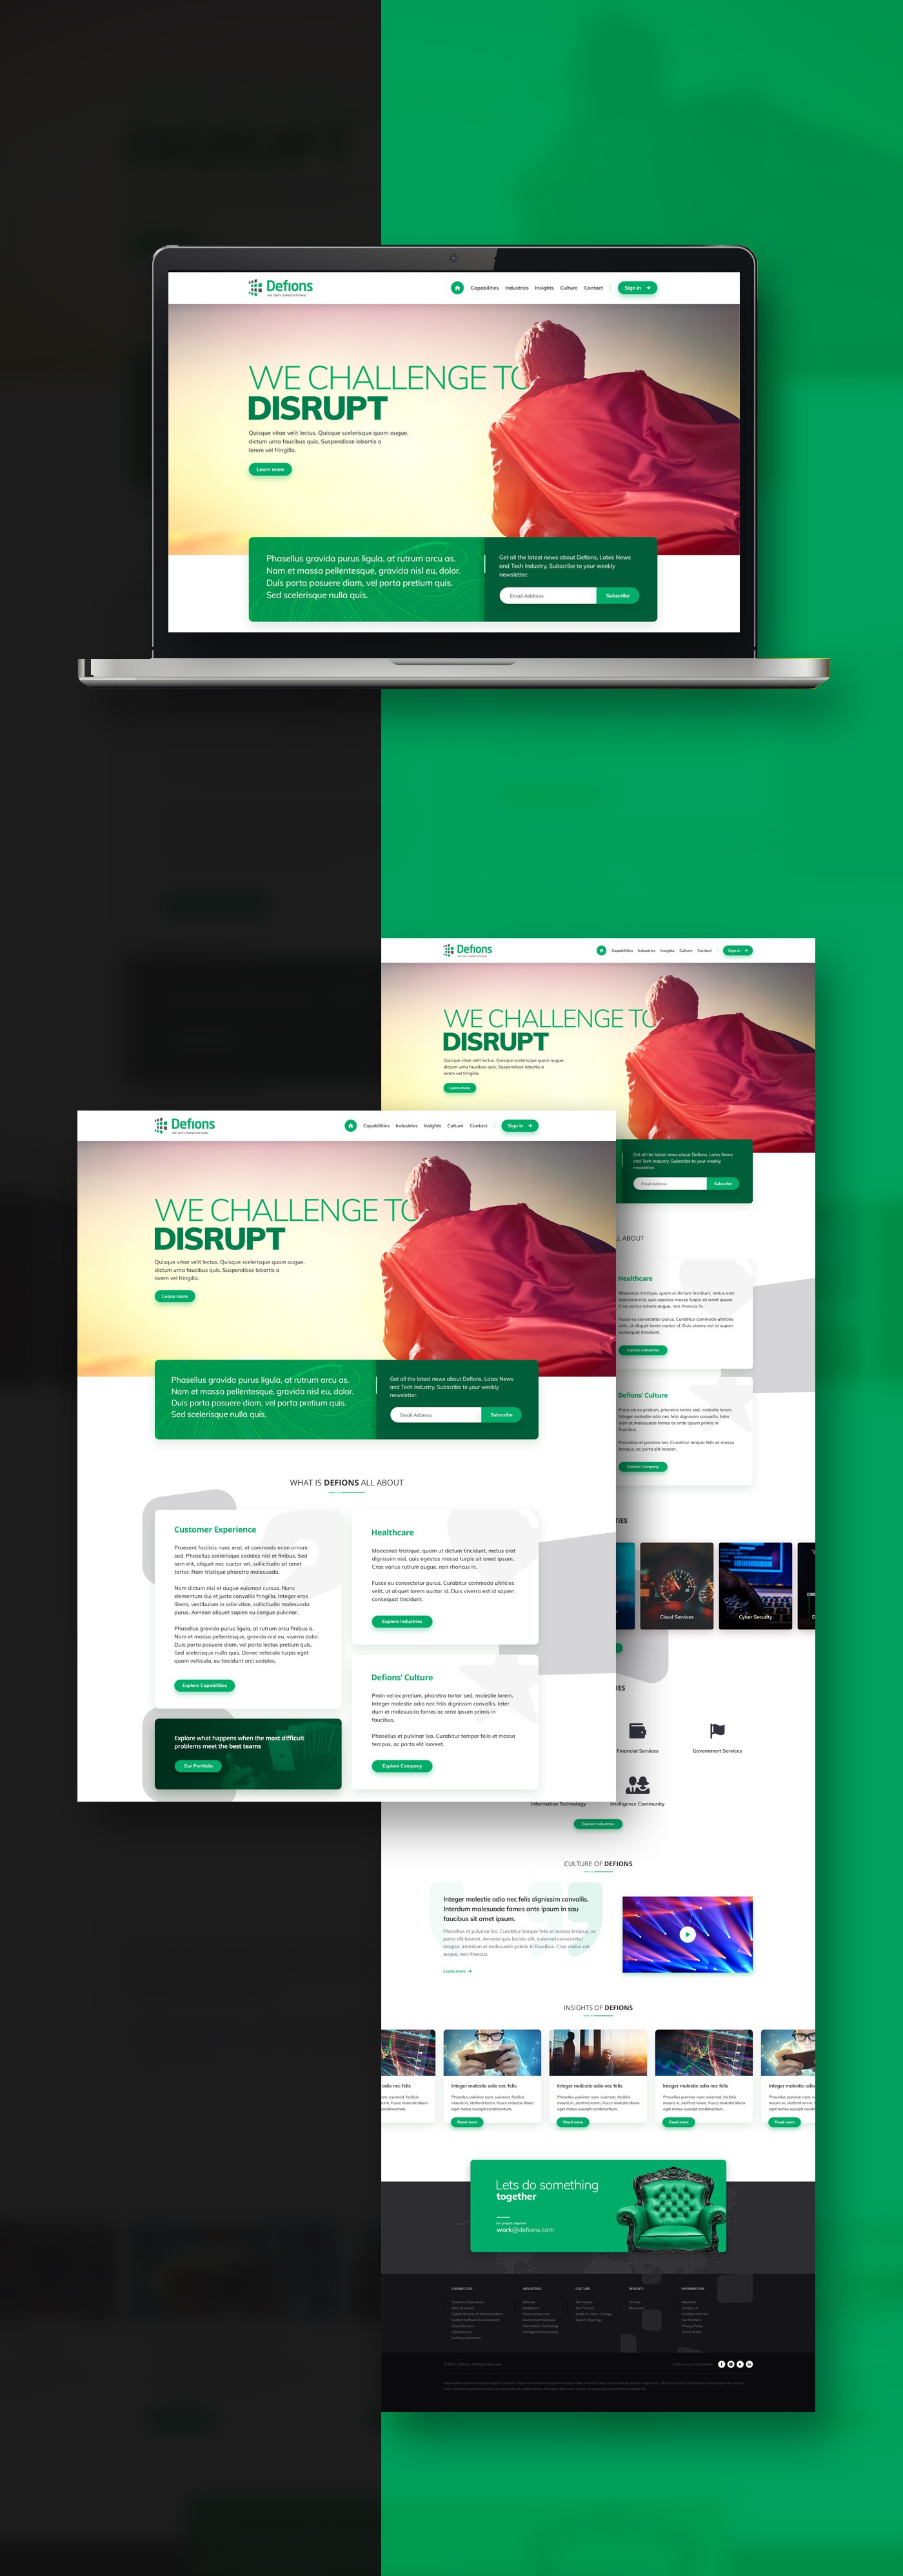 Brand-aligned Home page landing concept design and Powerpoint Template